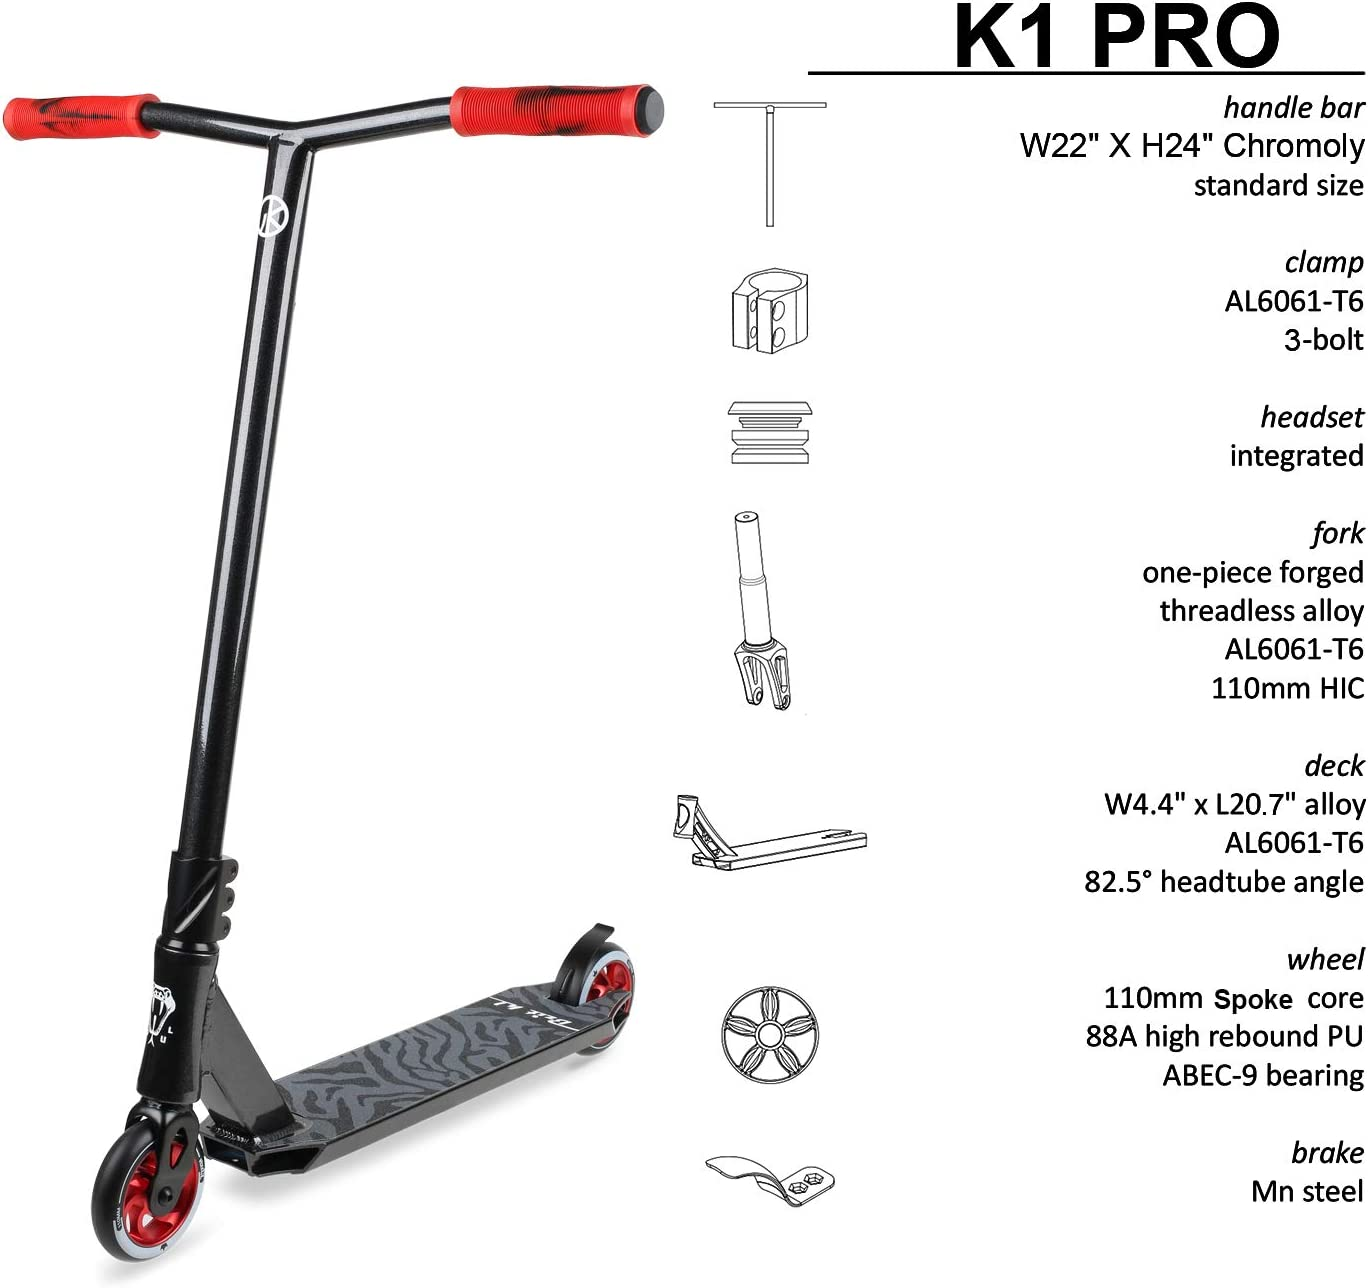 Teens//Adults Beginner to Intermediate Tricks Scooters for Kids 8 Years and Up Durable Vokul Bzit K1 Pro Scooter Complete Stunt Scooter Freestyle Scooter for Boys and Girls